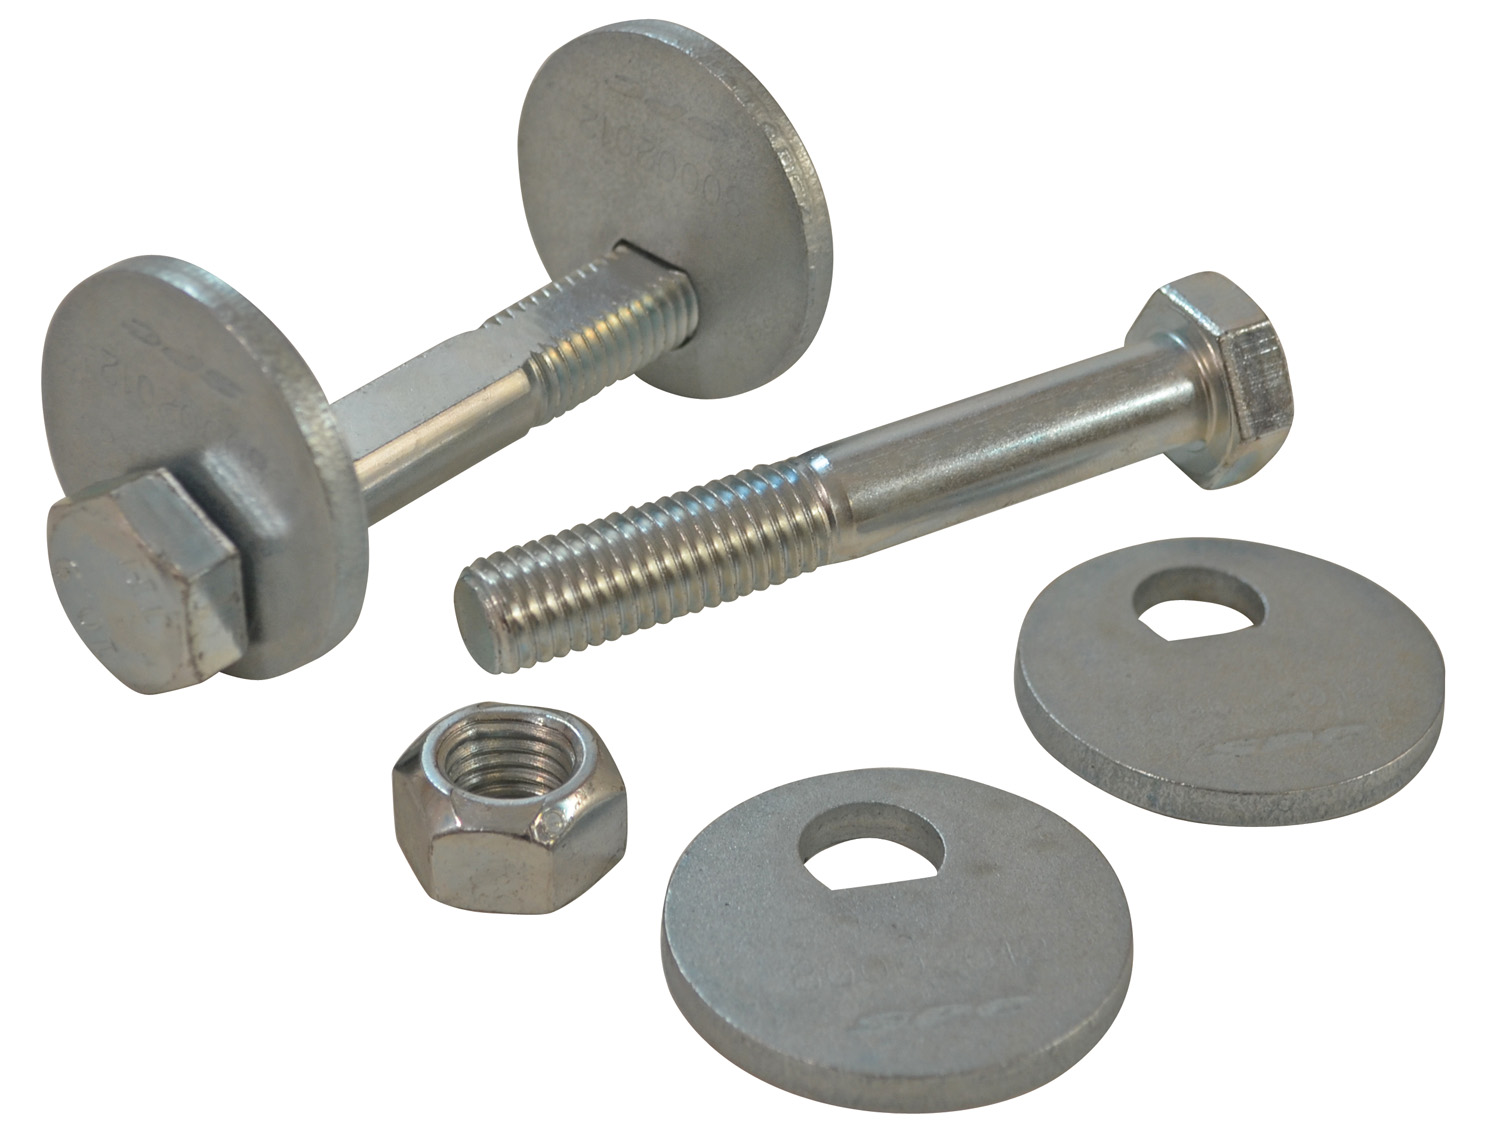 Fat Bob's Garage, Light Racing Part #87520, Nissan Pathfinder Camber Bolt Kit, Full Set 1985-2013_THUMBNAIL